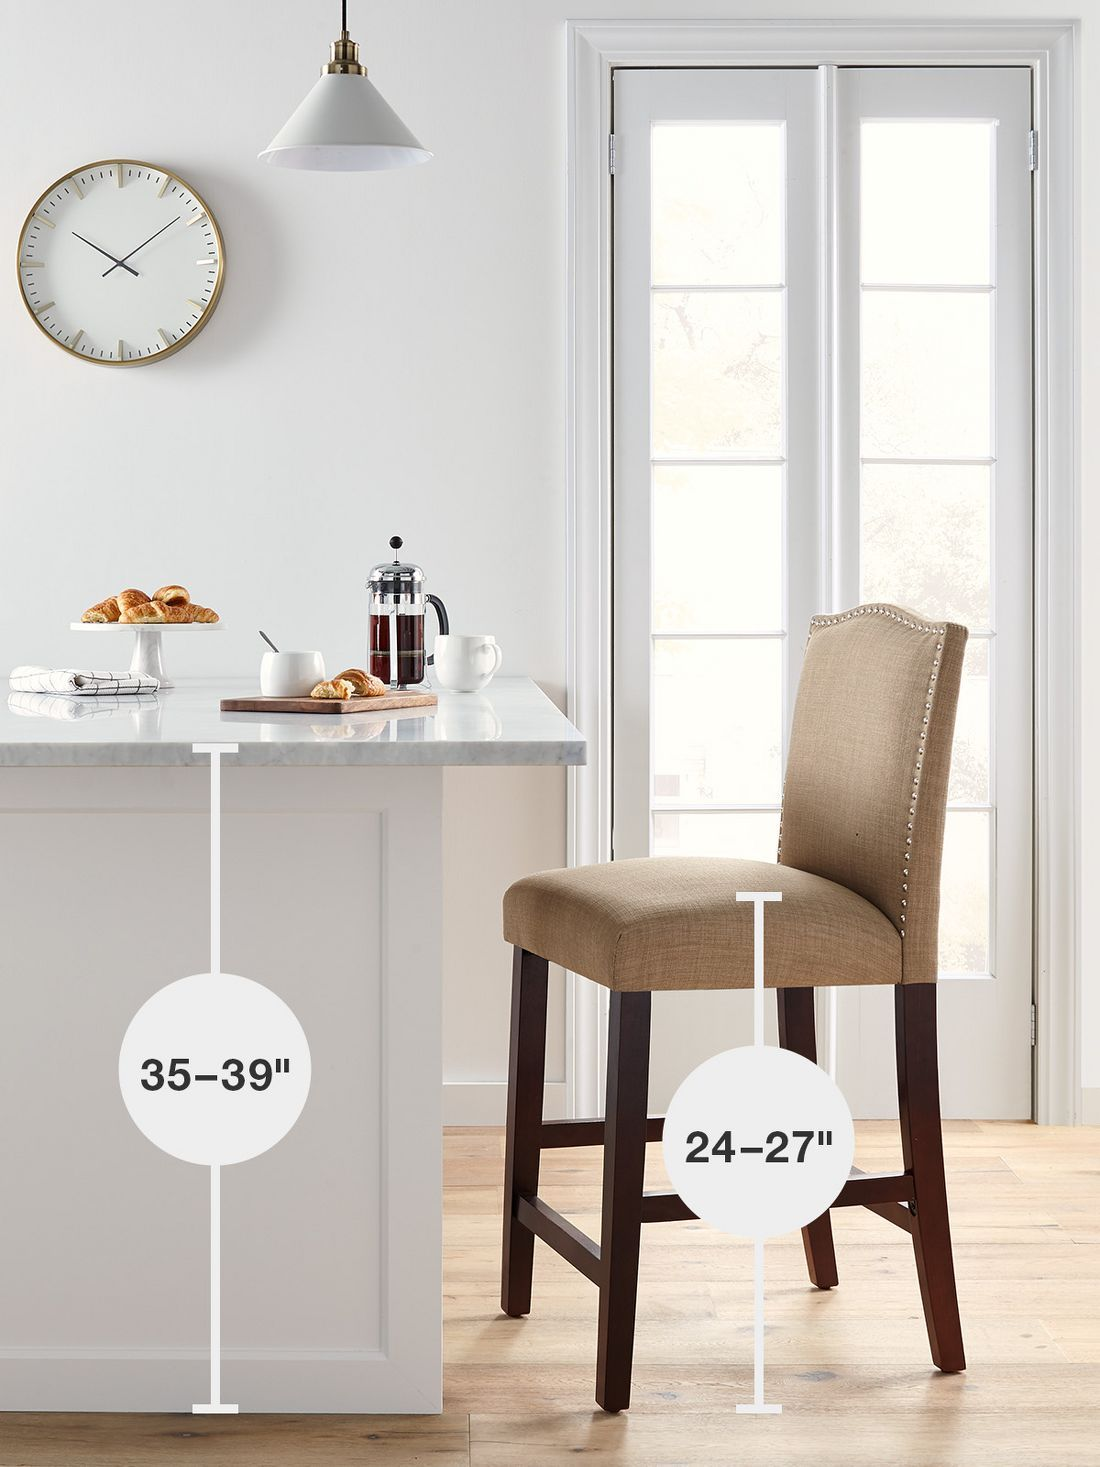 Sensational Shop Target For Bar Counter Stools You Will Love At Great Caraccident5 Cool Chair Designs And Ideas Caraccident5Info